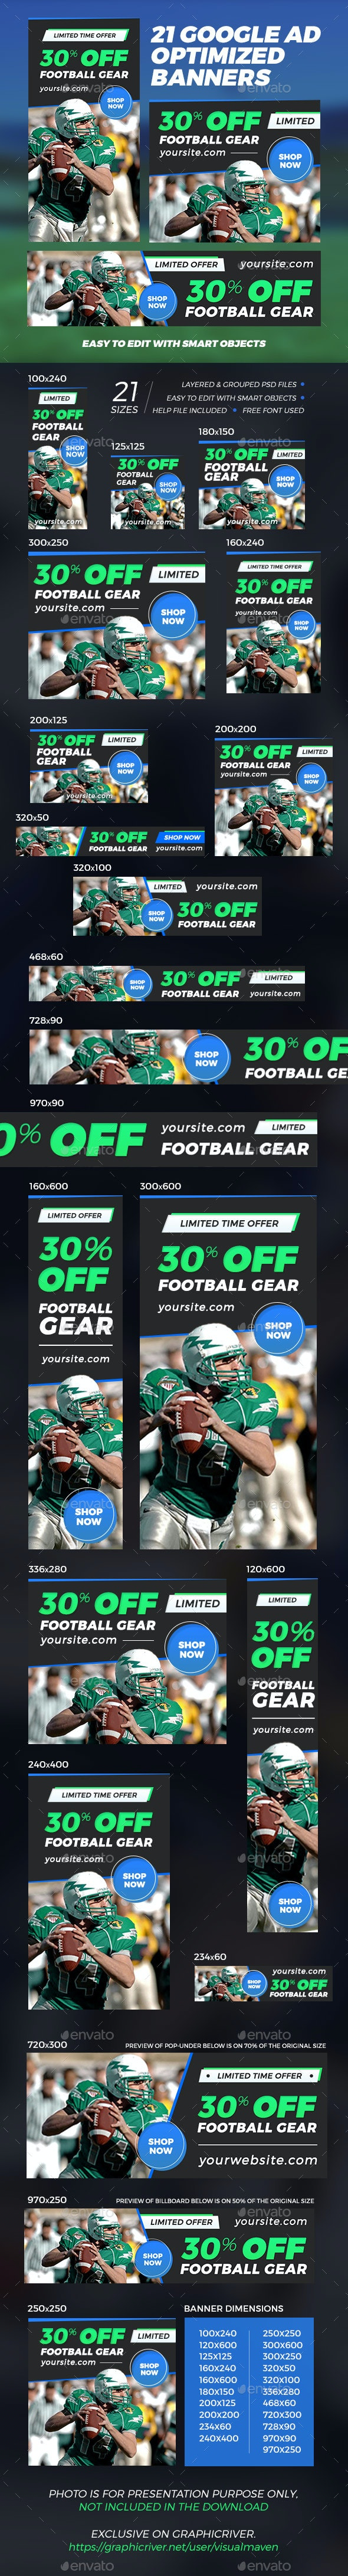 21 Sport Banner Ads - Banners & Ads Web Elements